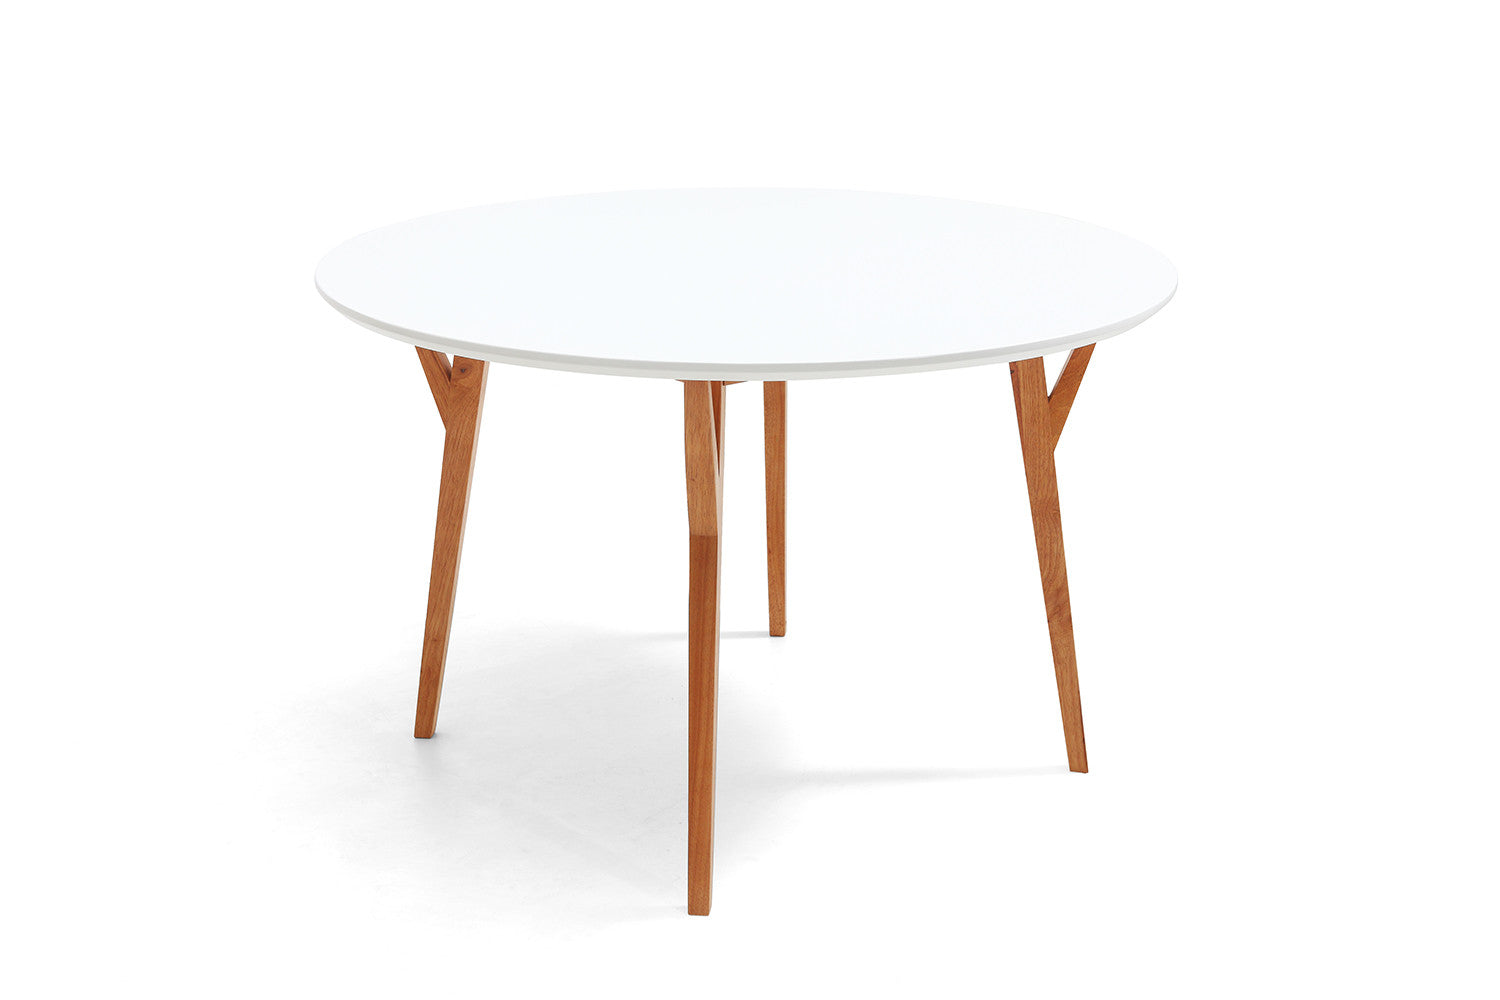 Table de salle manger ronde design scandinave moesa dewarens - Table salle a manger design ...